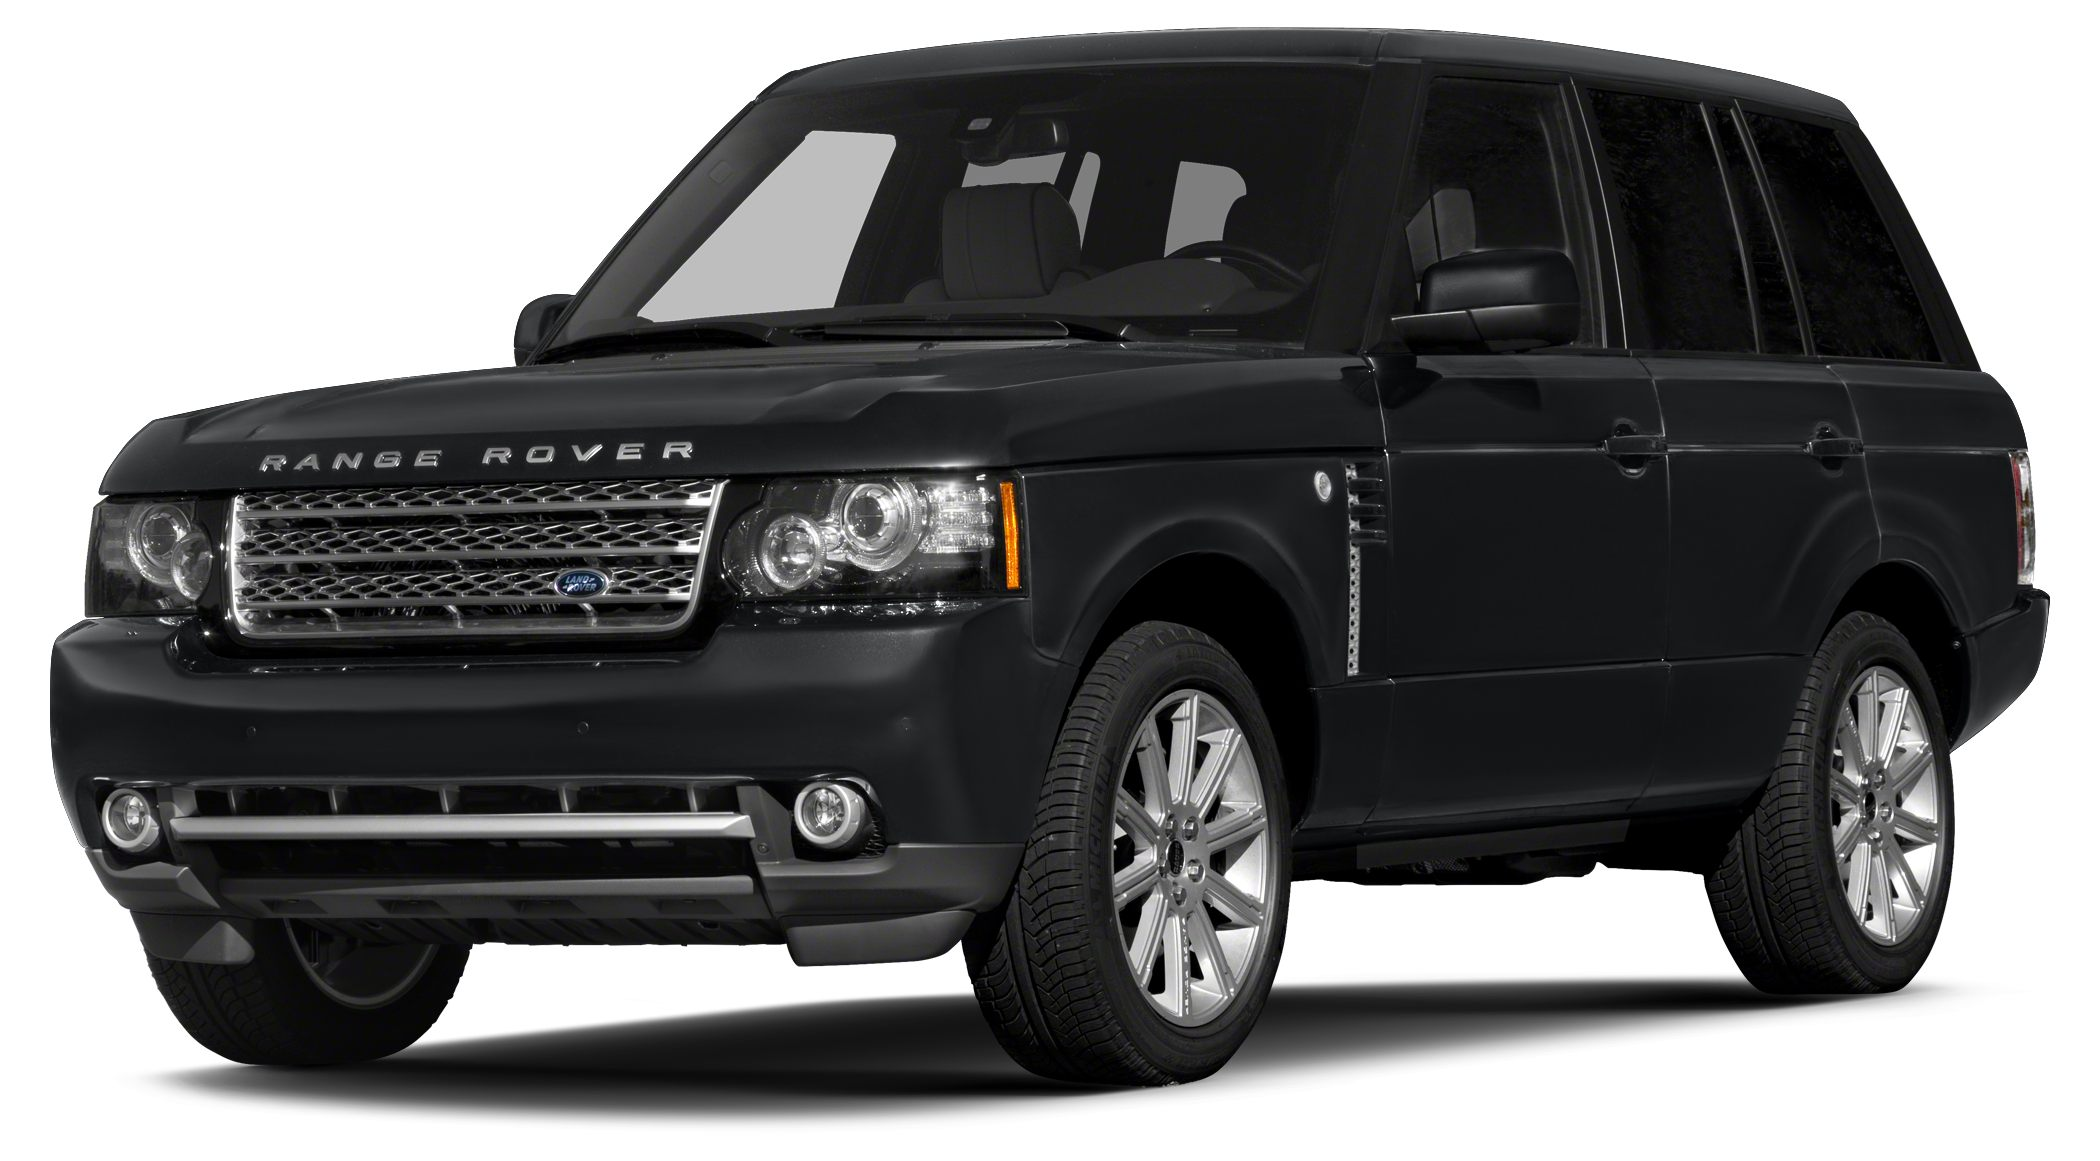 2012 Land Rover Range Rover HSE Haggle Free Price Low miles Long Body Black on Black Extra cle